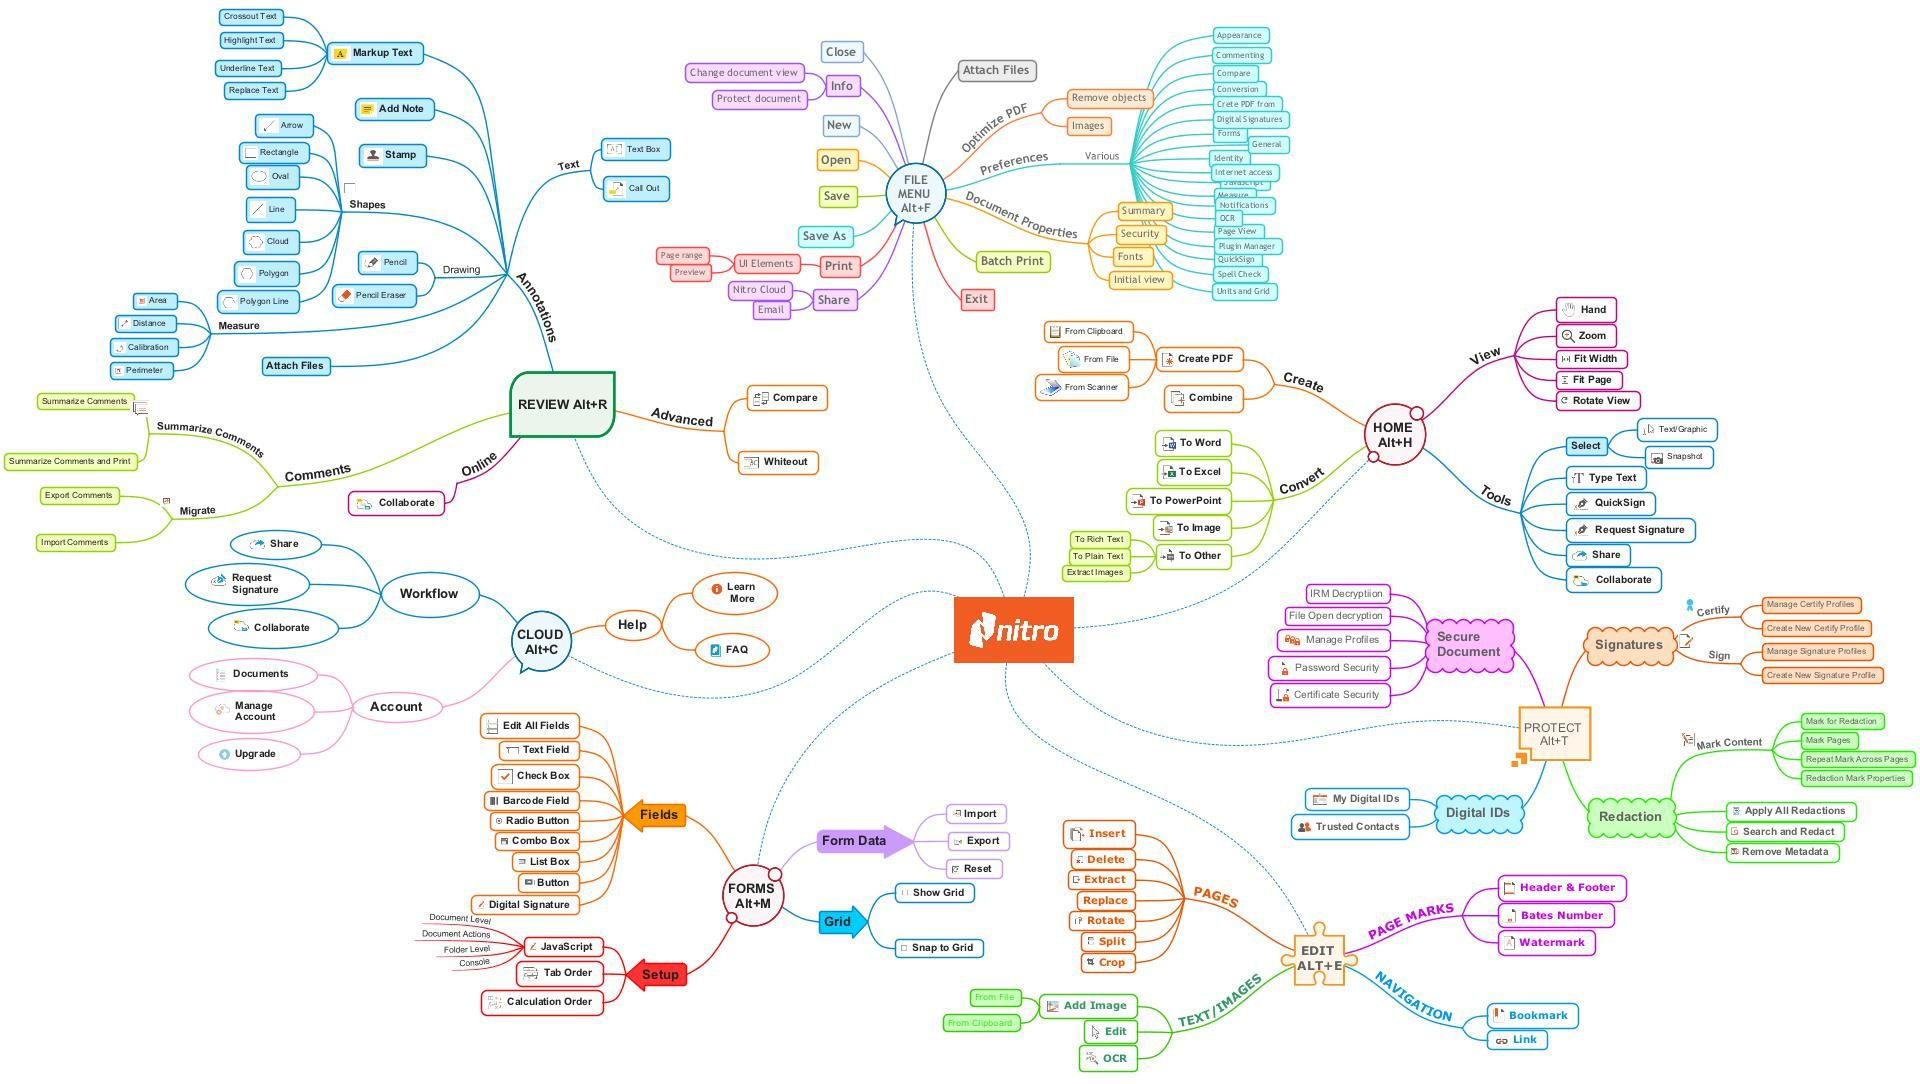 software company nitro used imindmap to plan develop and launch their flagship product nitro - Imindmap Software